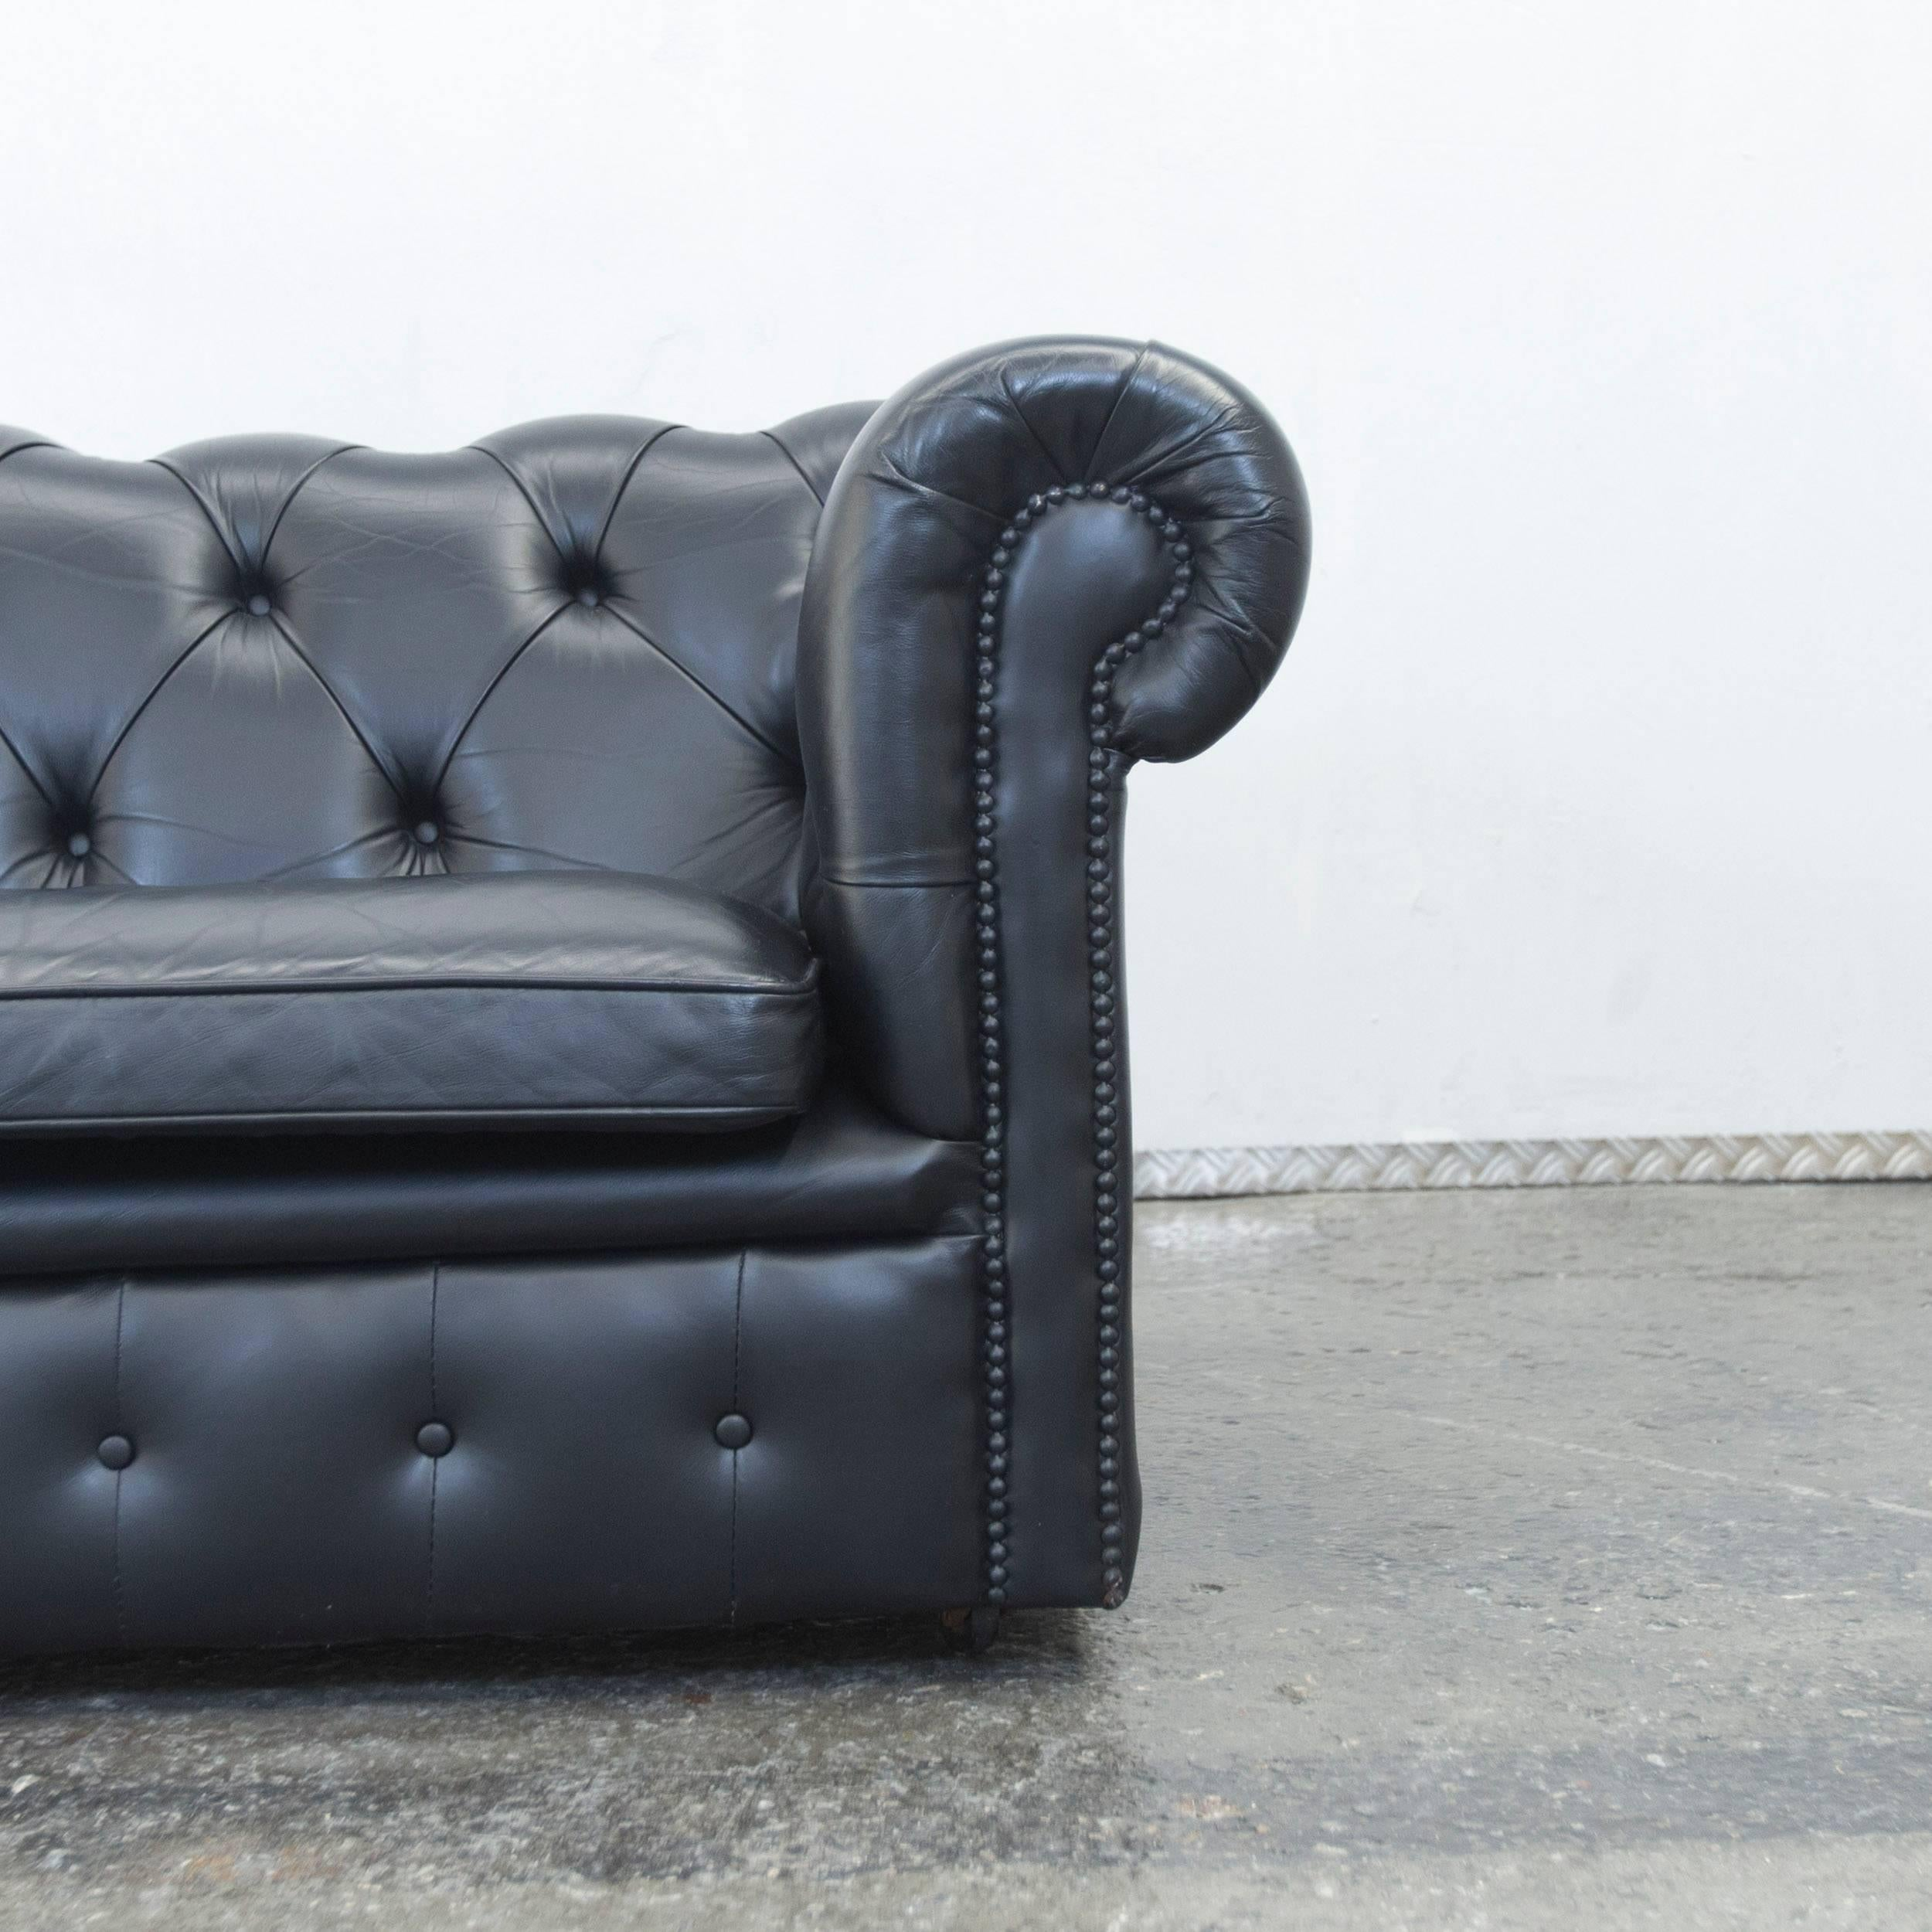 British Springvale Chesterfield Sofa Black Leather Two Seat Couch Vintage  Retro For Sale